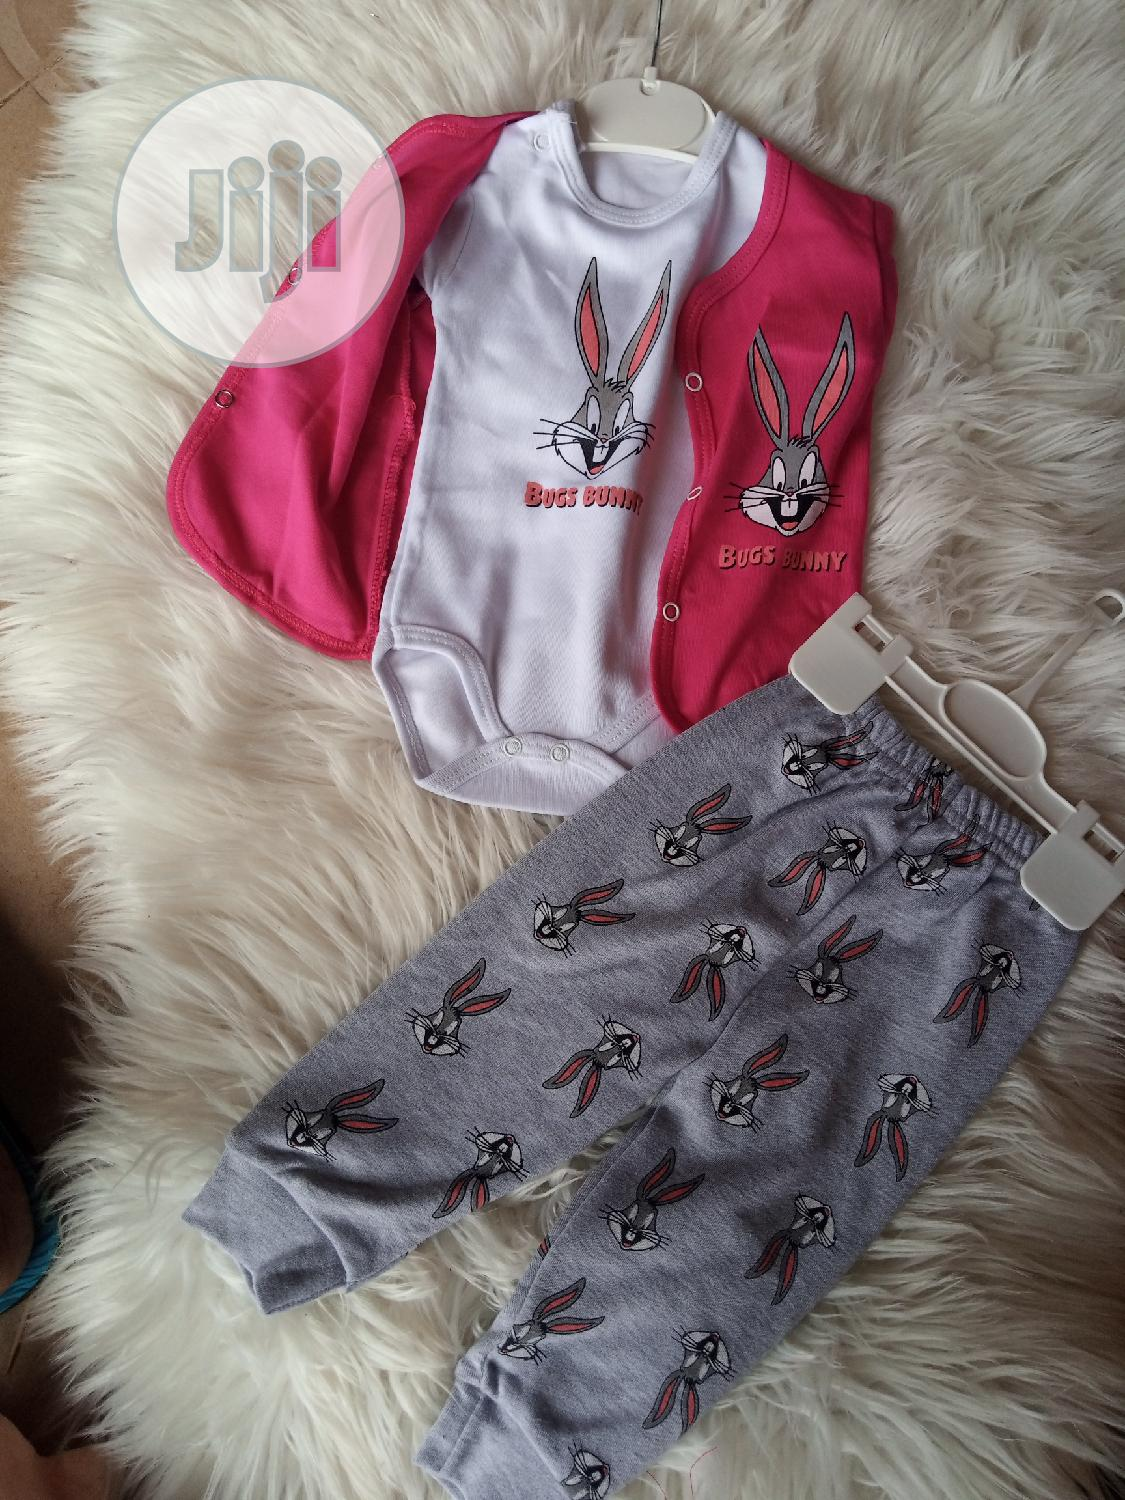 LV Top On Jeans | Children's Clothing for sale in Agege, Lagos State, Nigeria